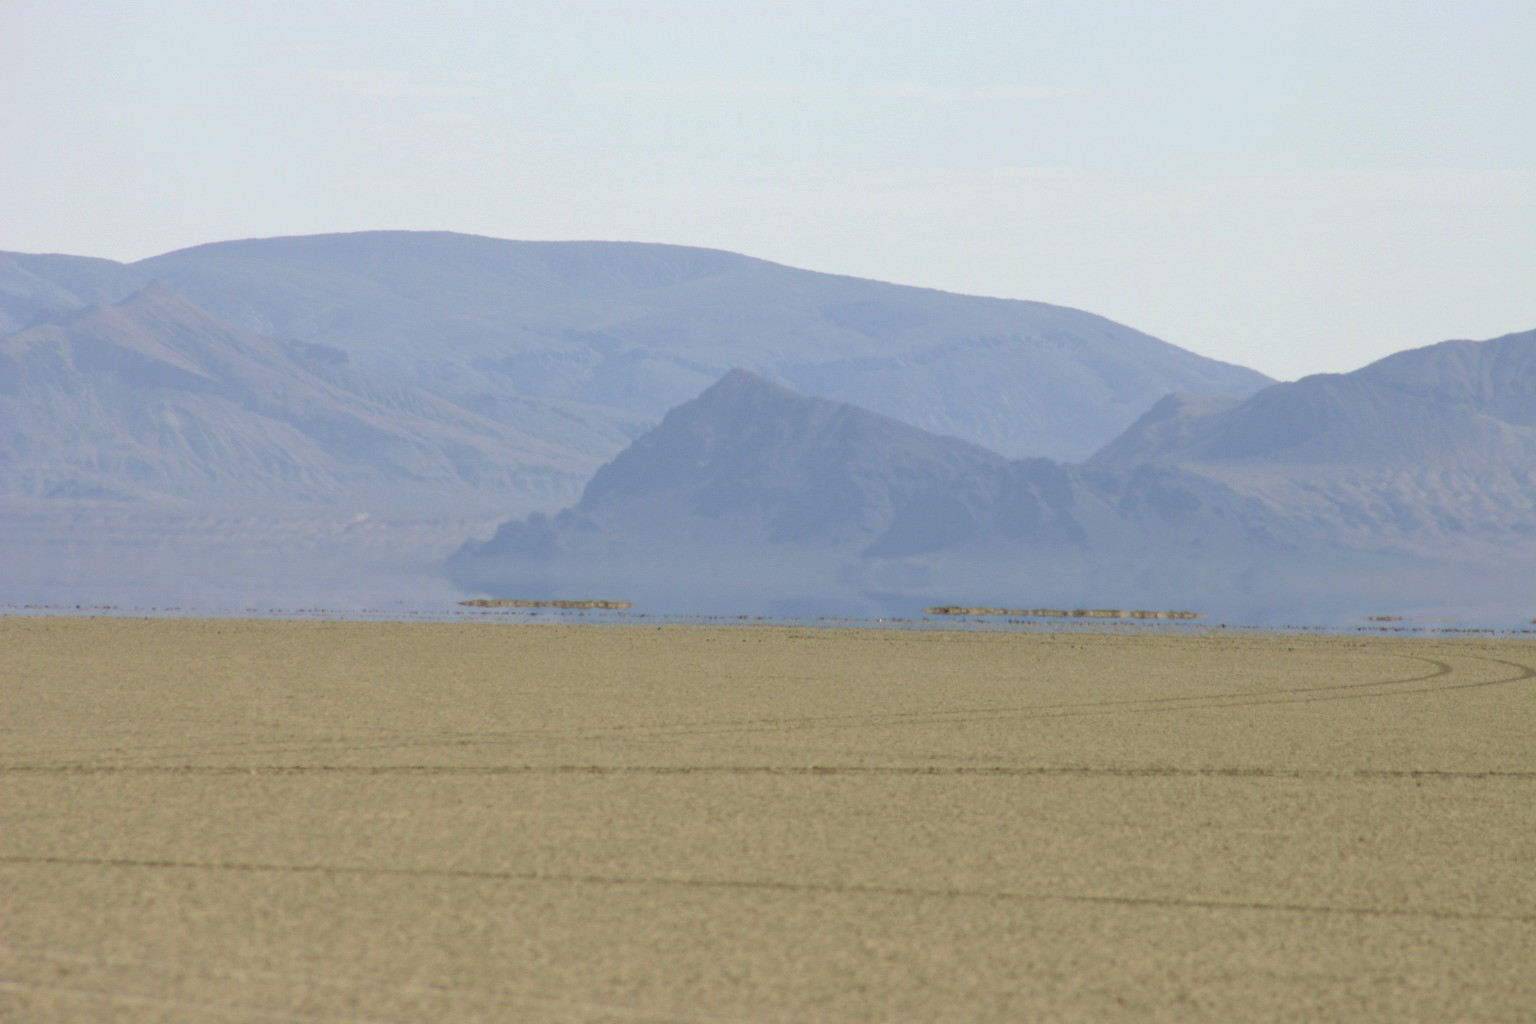 rock point black singles The namesake of the black rock desert in nevada is commonly known as black rock point, which is located at the southern end of the black rock range references.